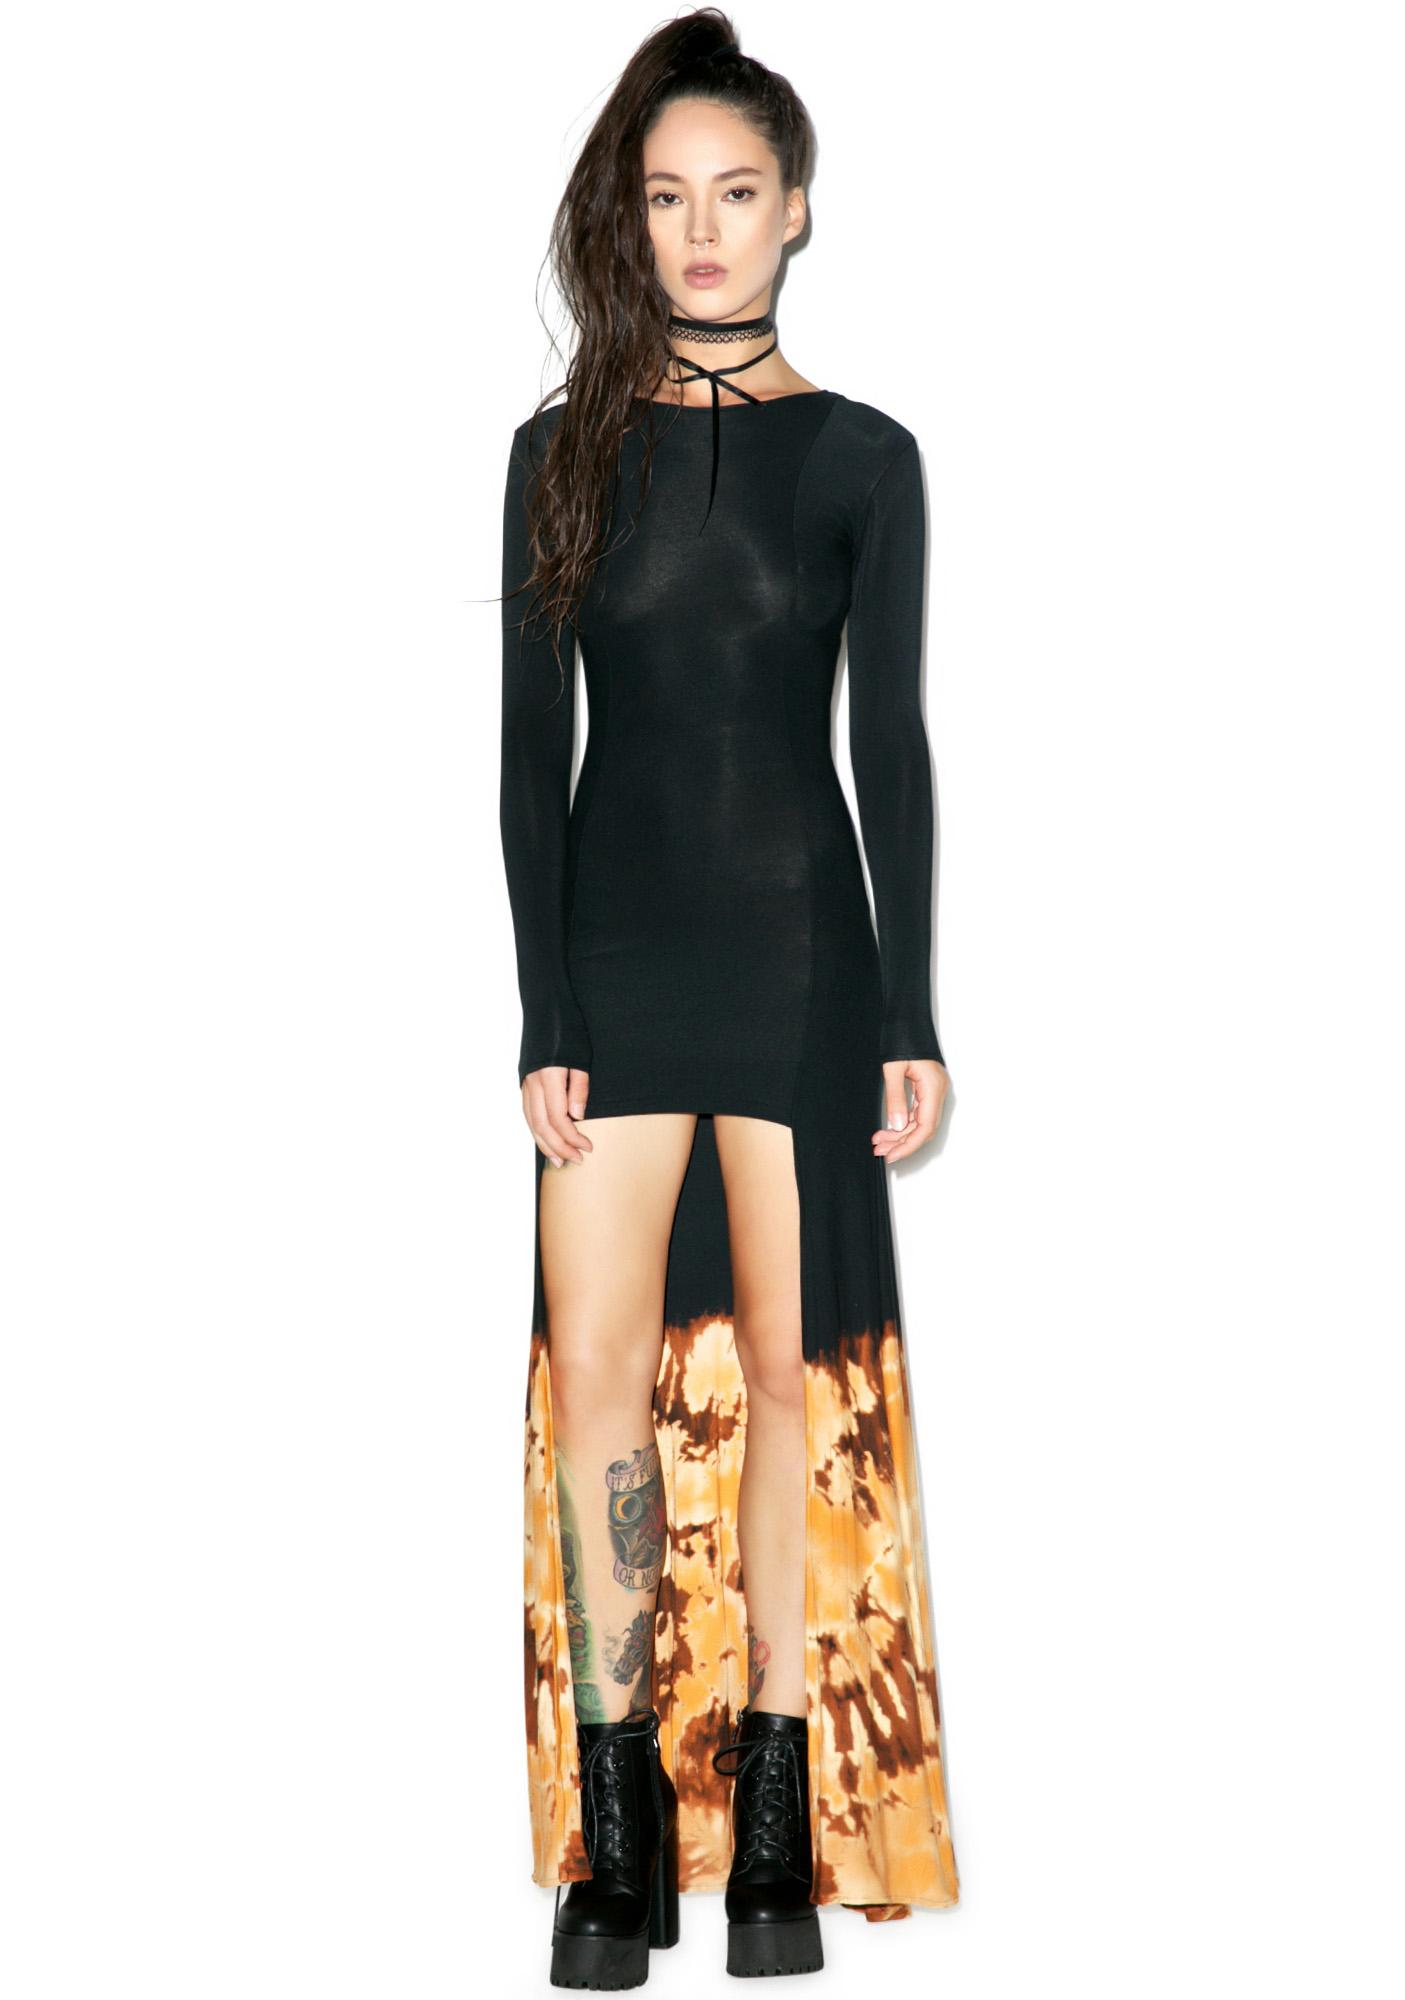 Castles Couture Fire Goddess Panel Dress